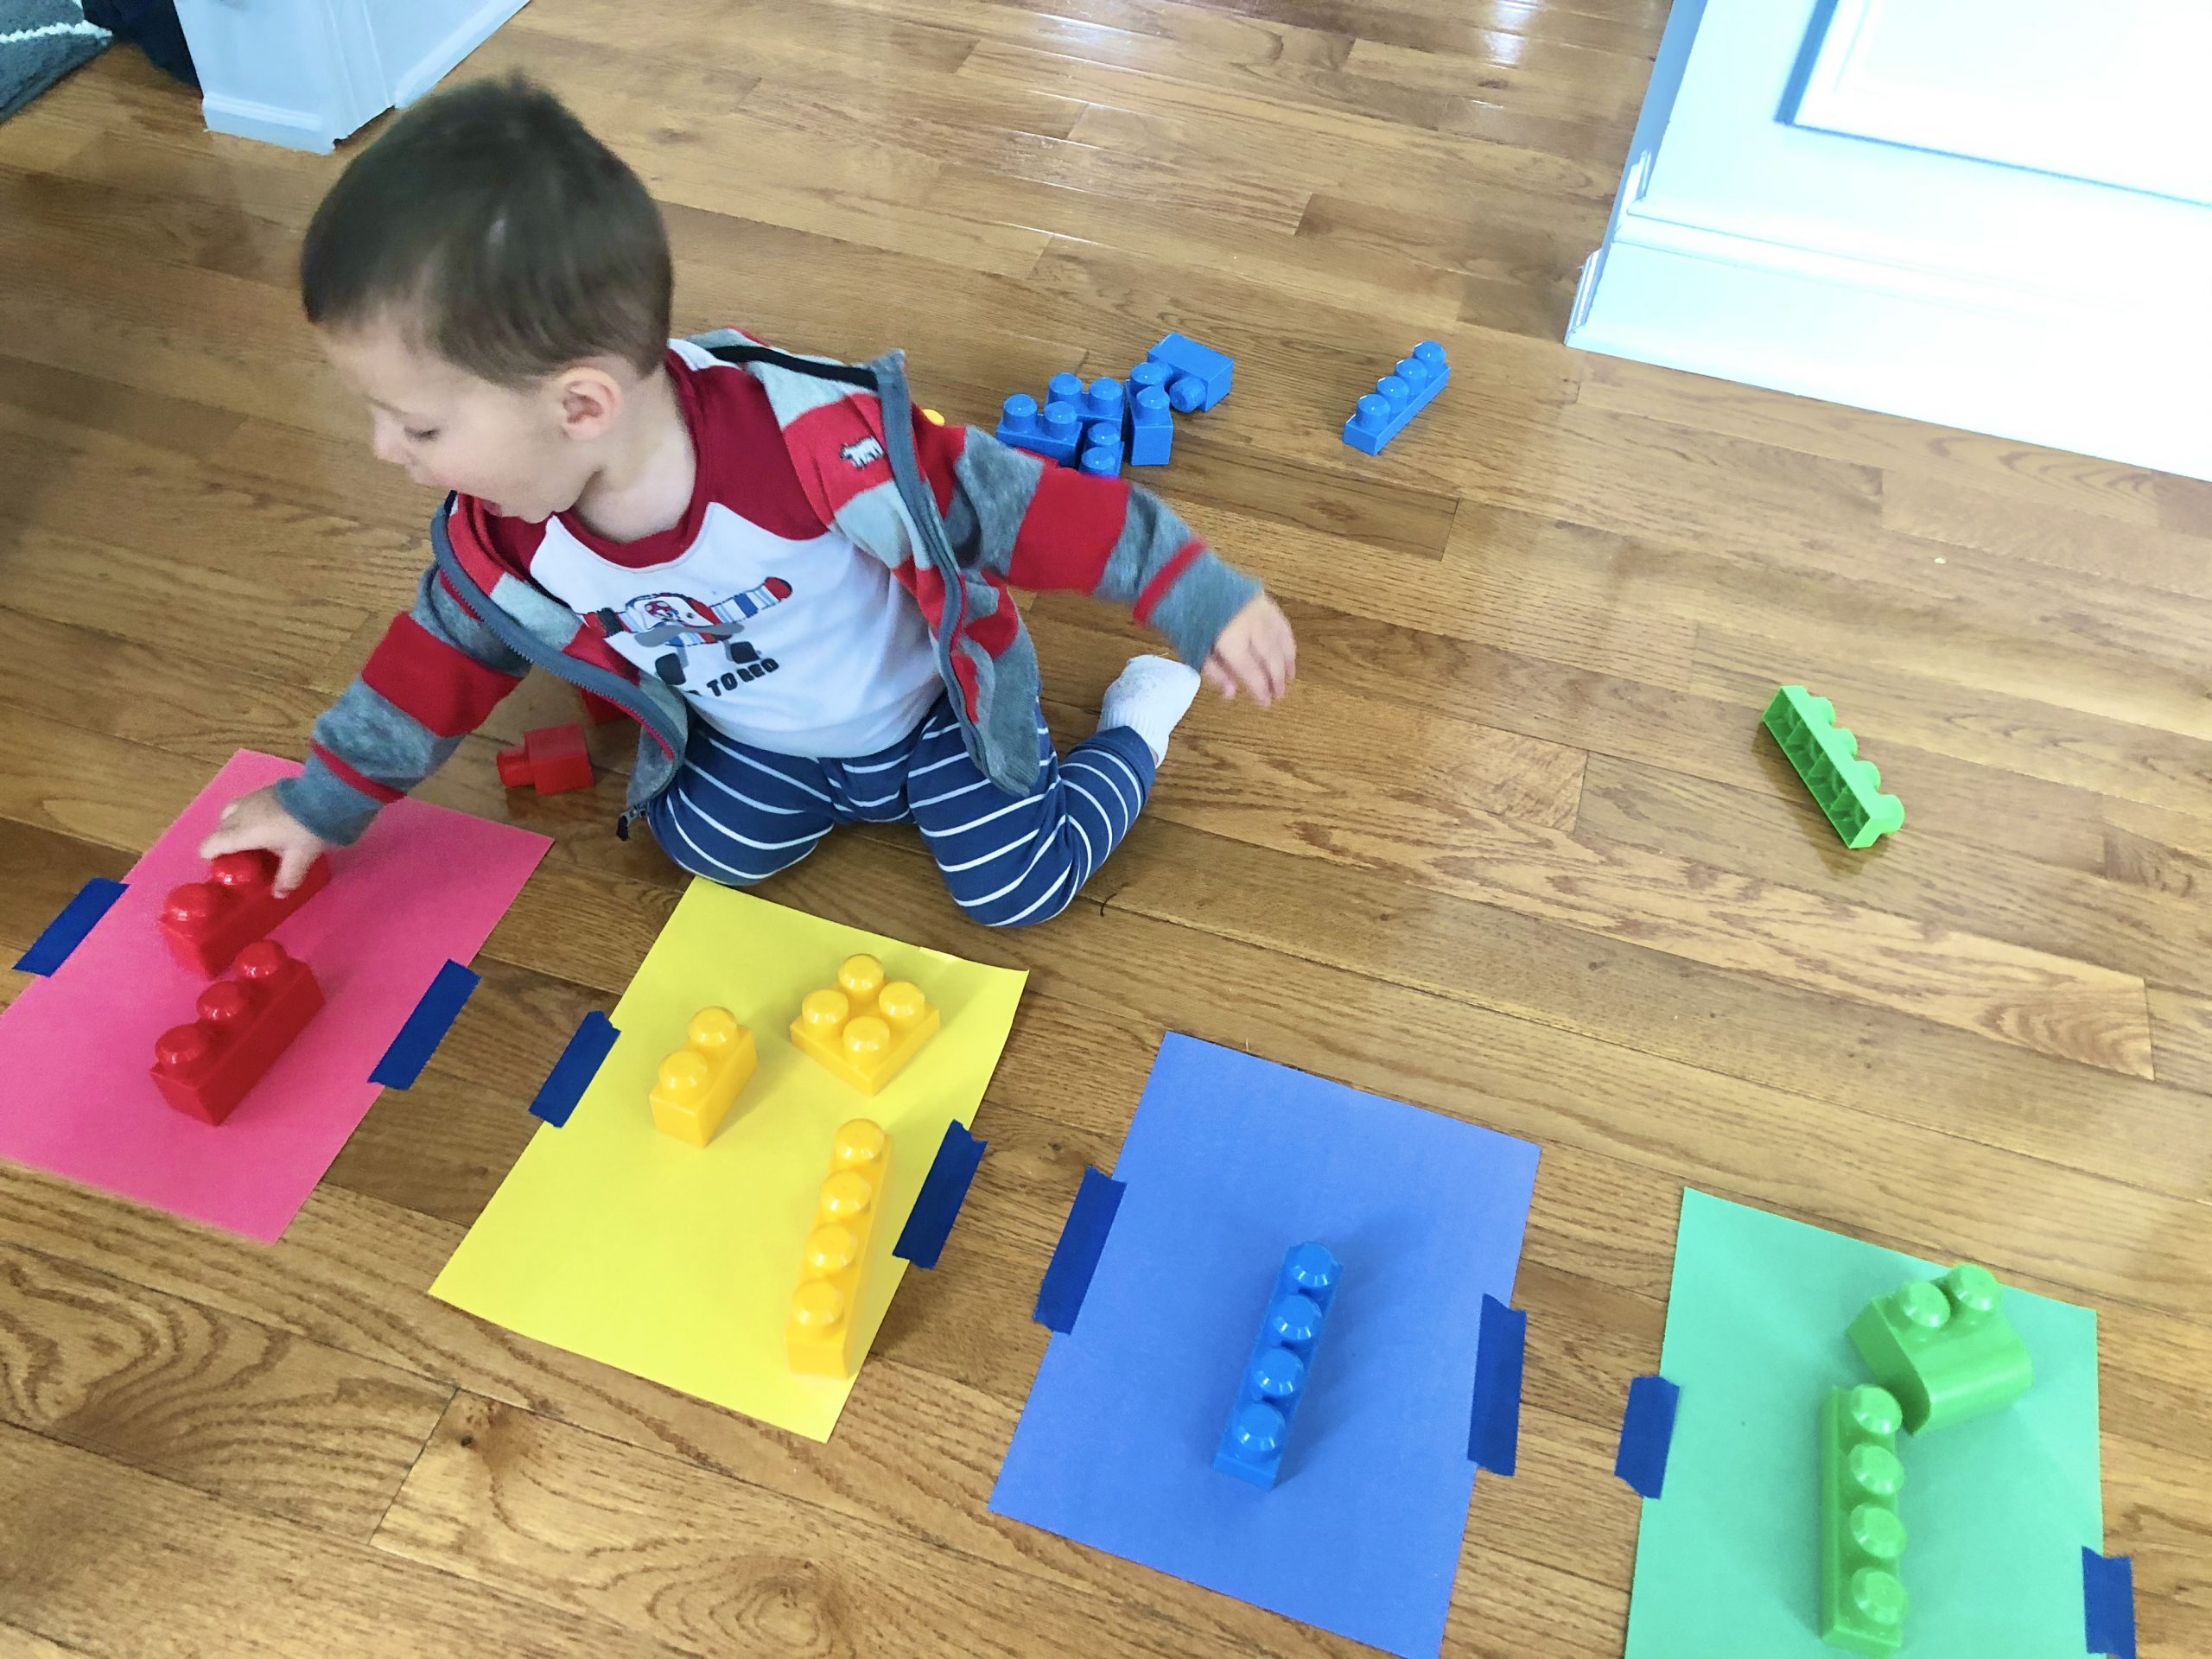 Teach your toddler colors using this activity to match and sort toys or blocks. They will gain color recognition as they learn the colors and match them.